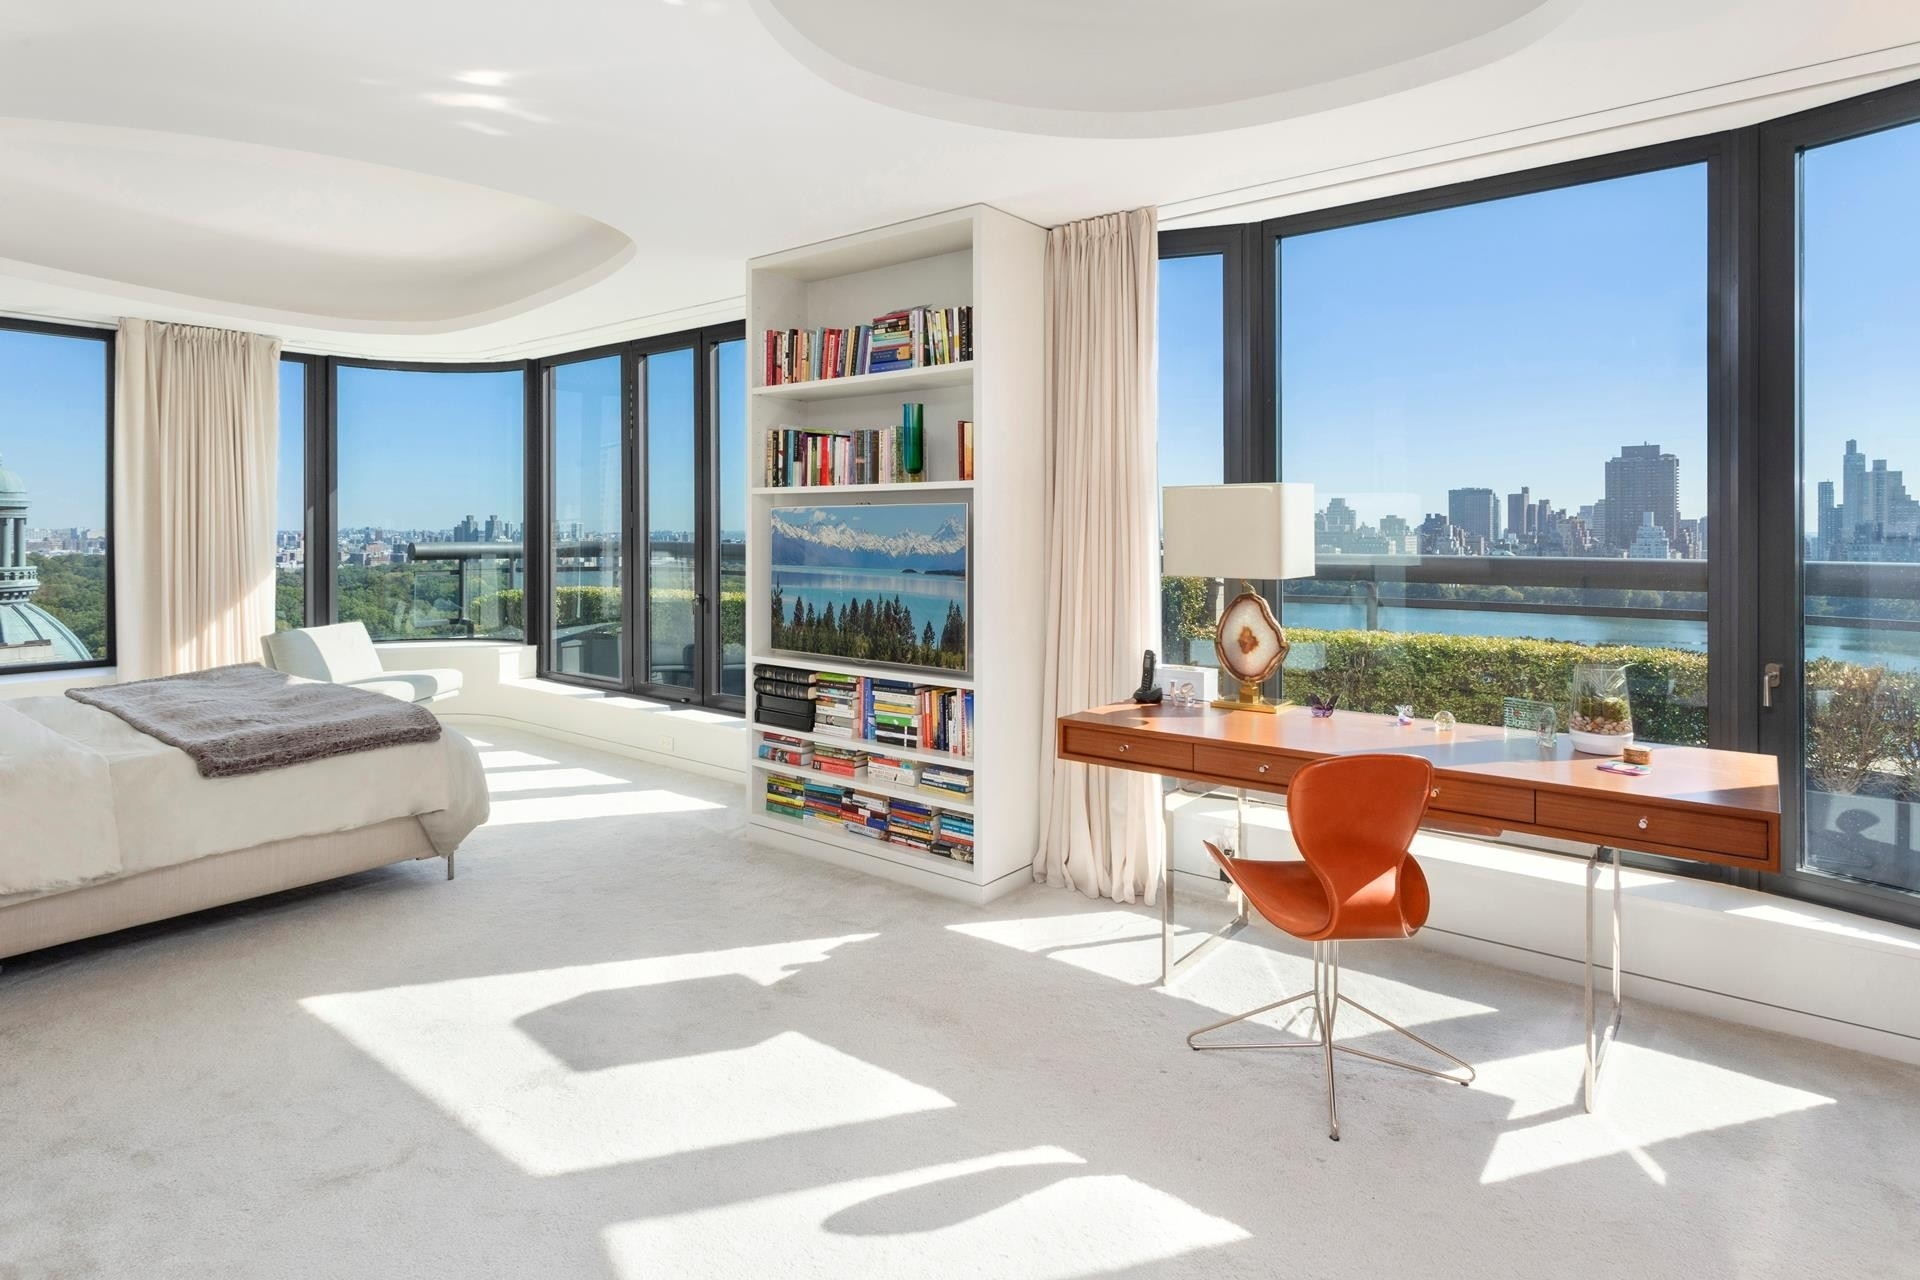 10. Condominiums for Sale at 279 CENTRAL PARK W, PHBA Upper West Side, New York, NY 10024